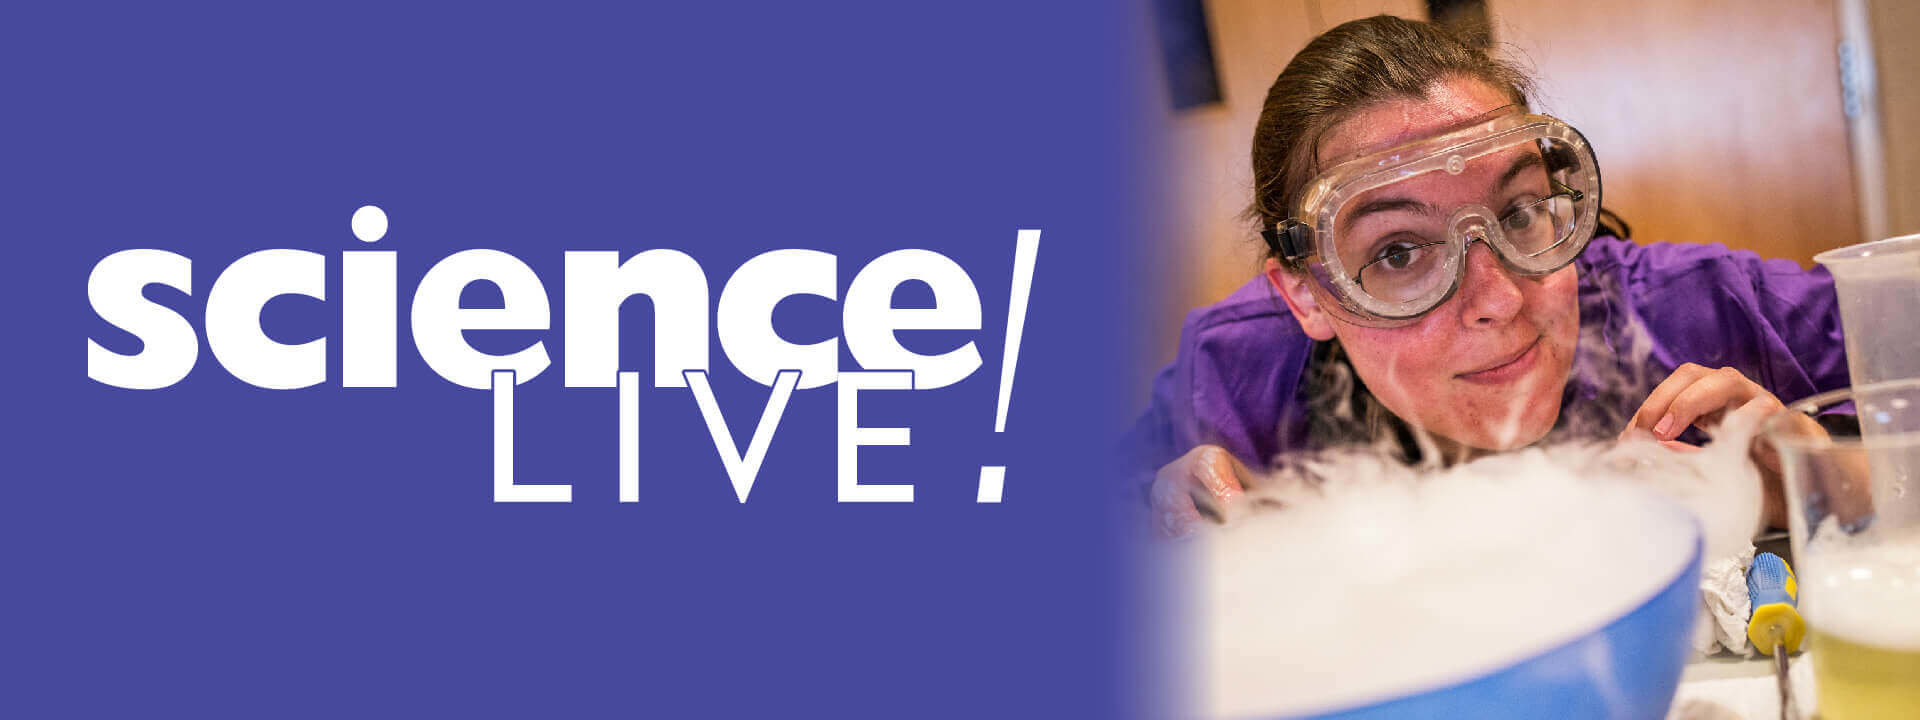 Science Live logo and photo of presenter.